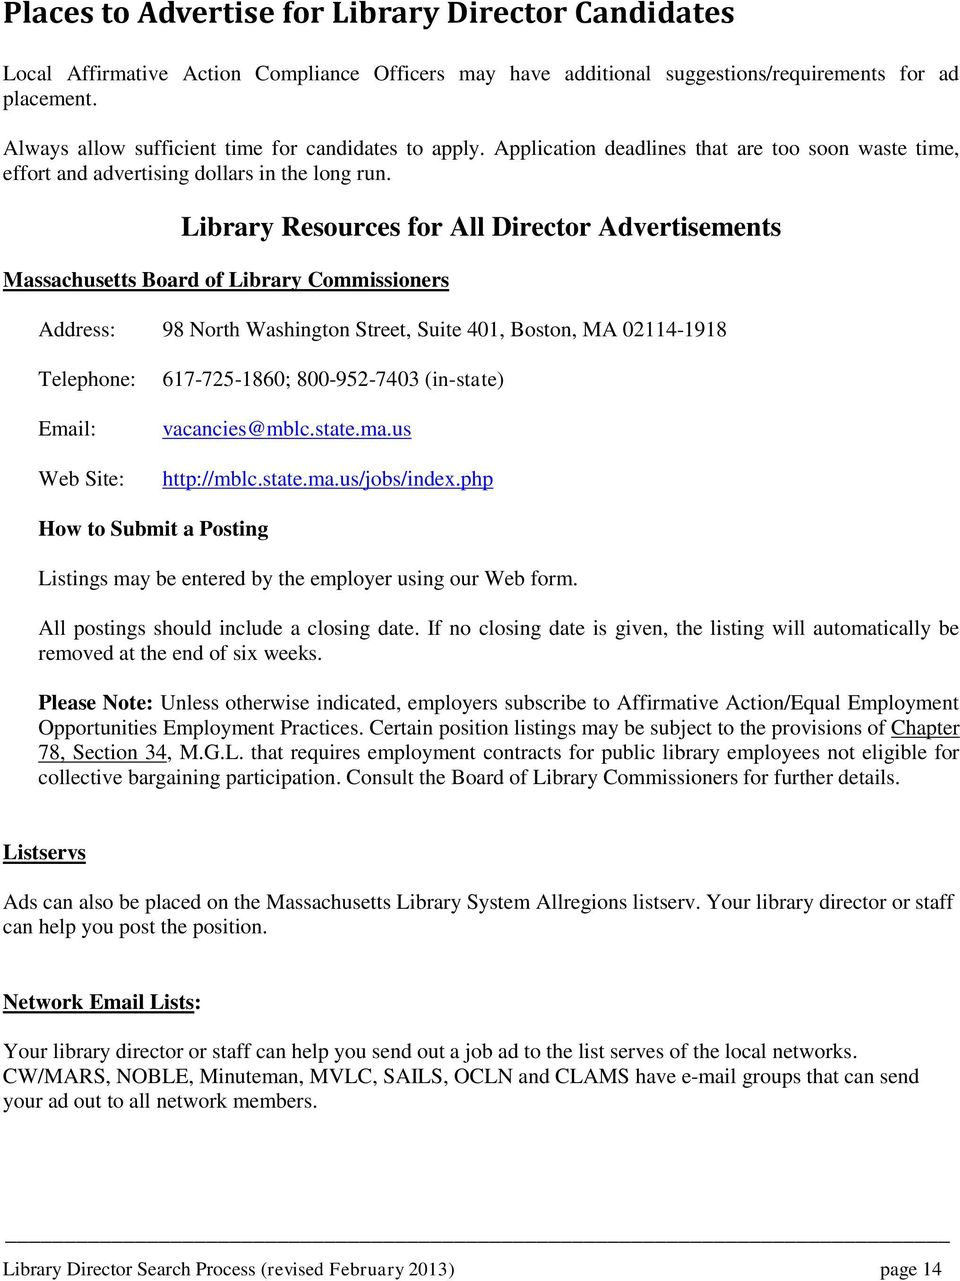 Library Resources for All Director Advertisements Massachusetts Board of Library Commissioners Address: 98 North Washington Street, Suite 401, Boston, MA 02114-1918 Telephone: Email: Web Site: